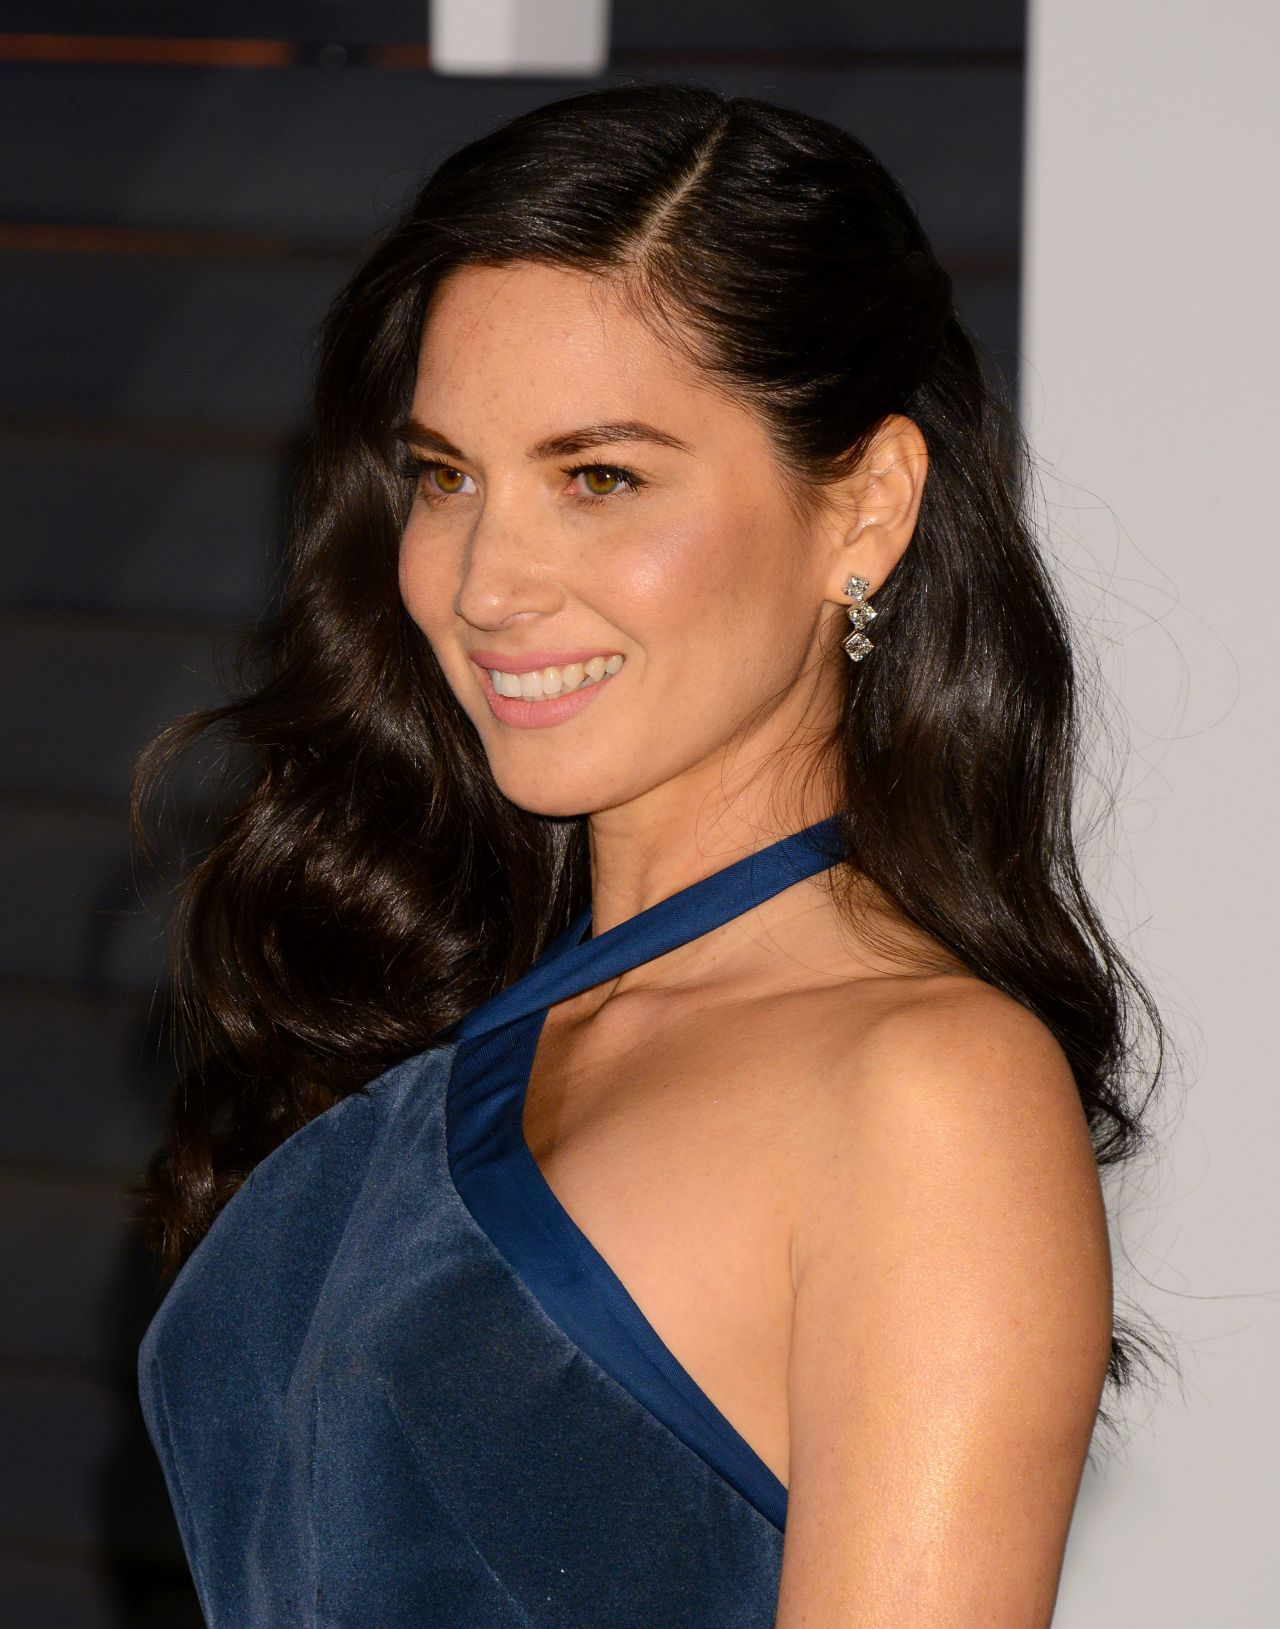 olivia-munn-zac-posen-2015-vanity-fair-oscar-party